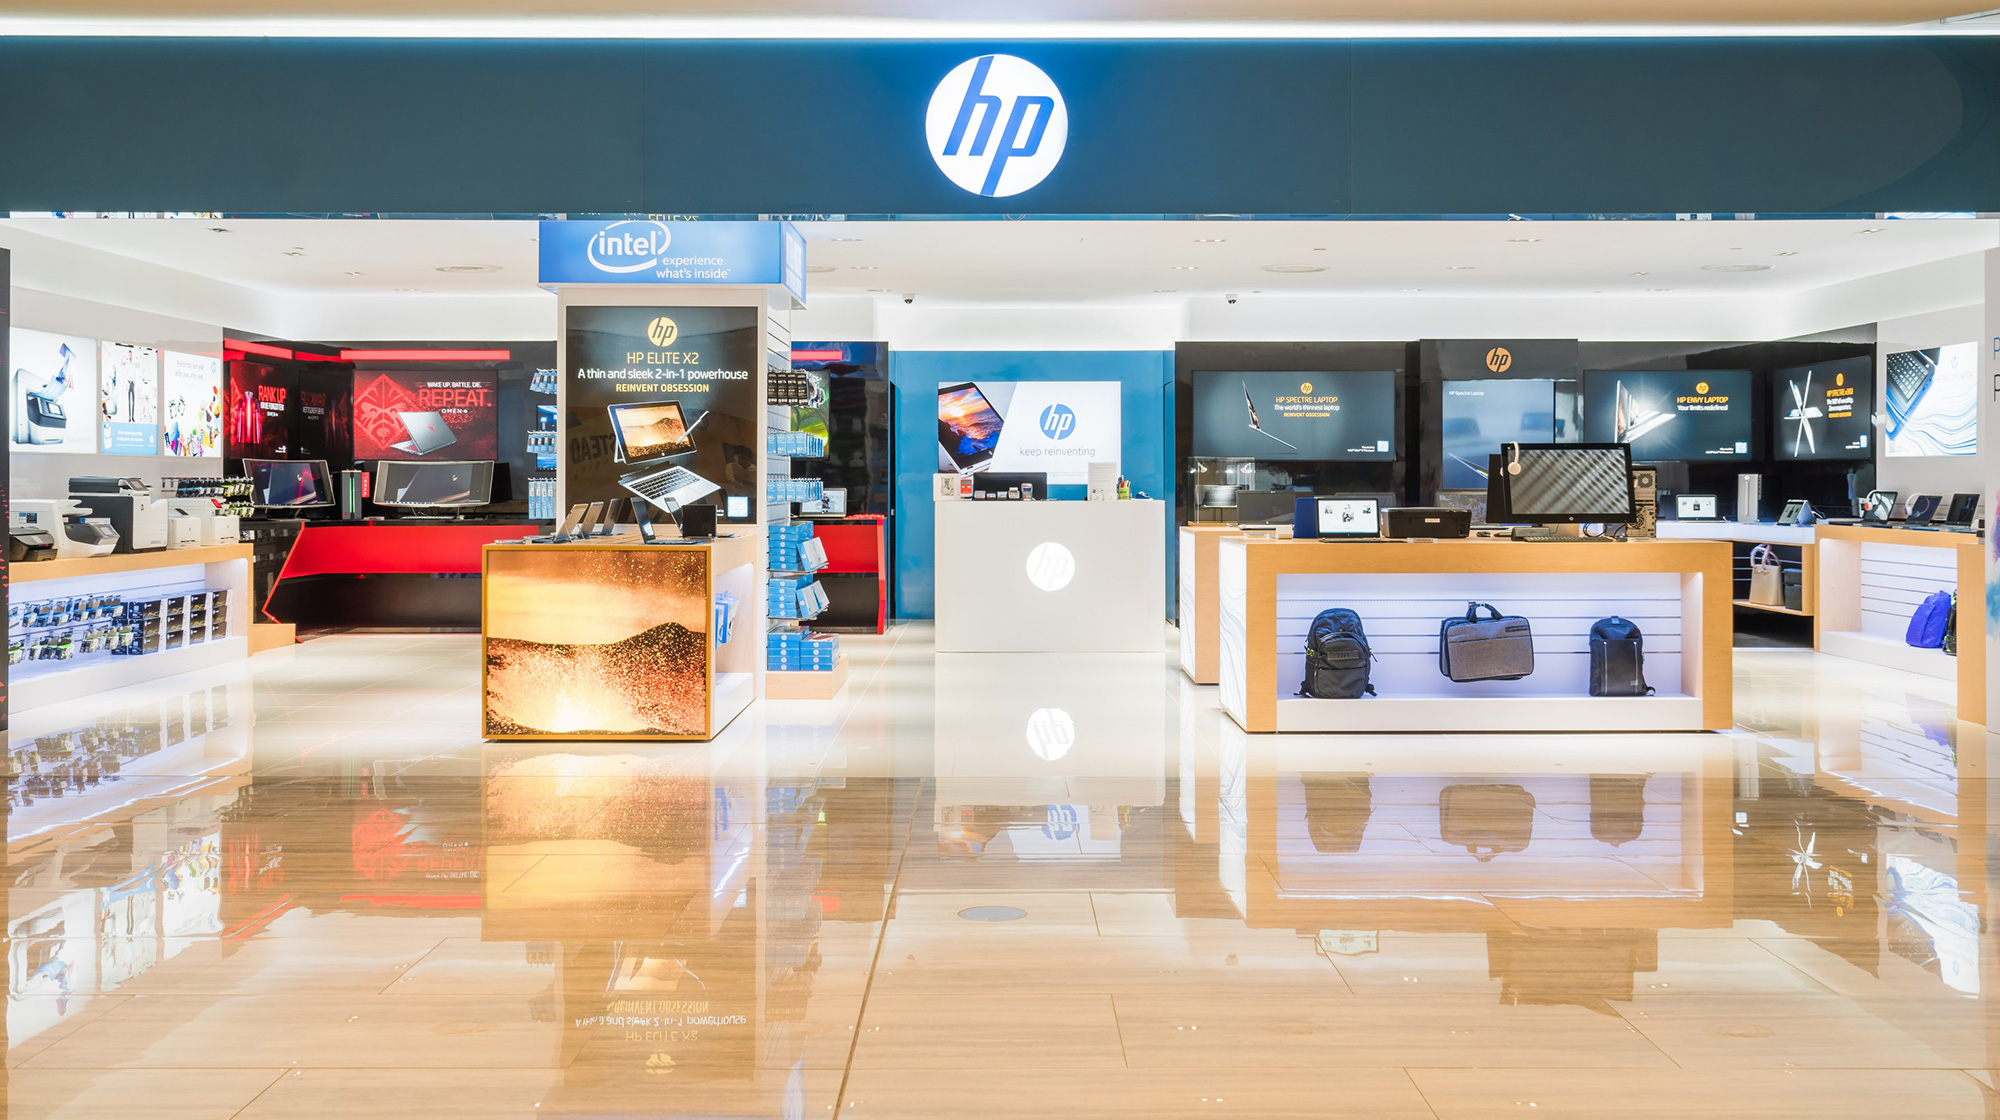 hp in singapore Shop from a wide range of windows laptops, 2-in-1 tablet computers and performance gaming pcs, designed for play or to inspire your next big idea.